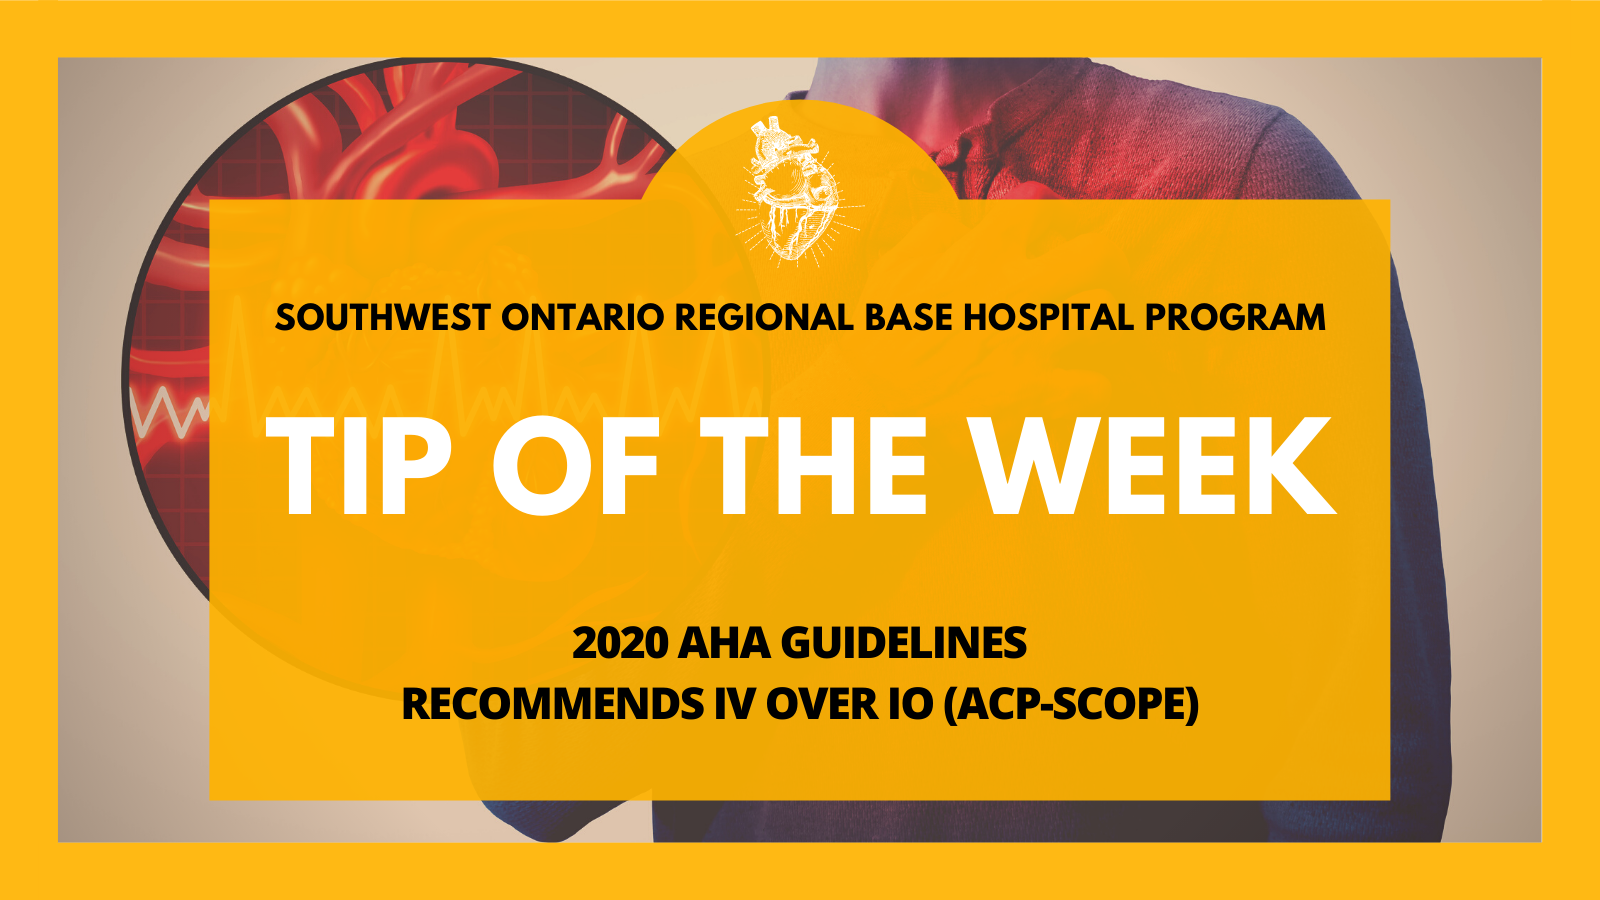 2020 AHA Guidelines Recommends IV Over IO (ACP-Scope)